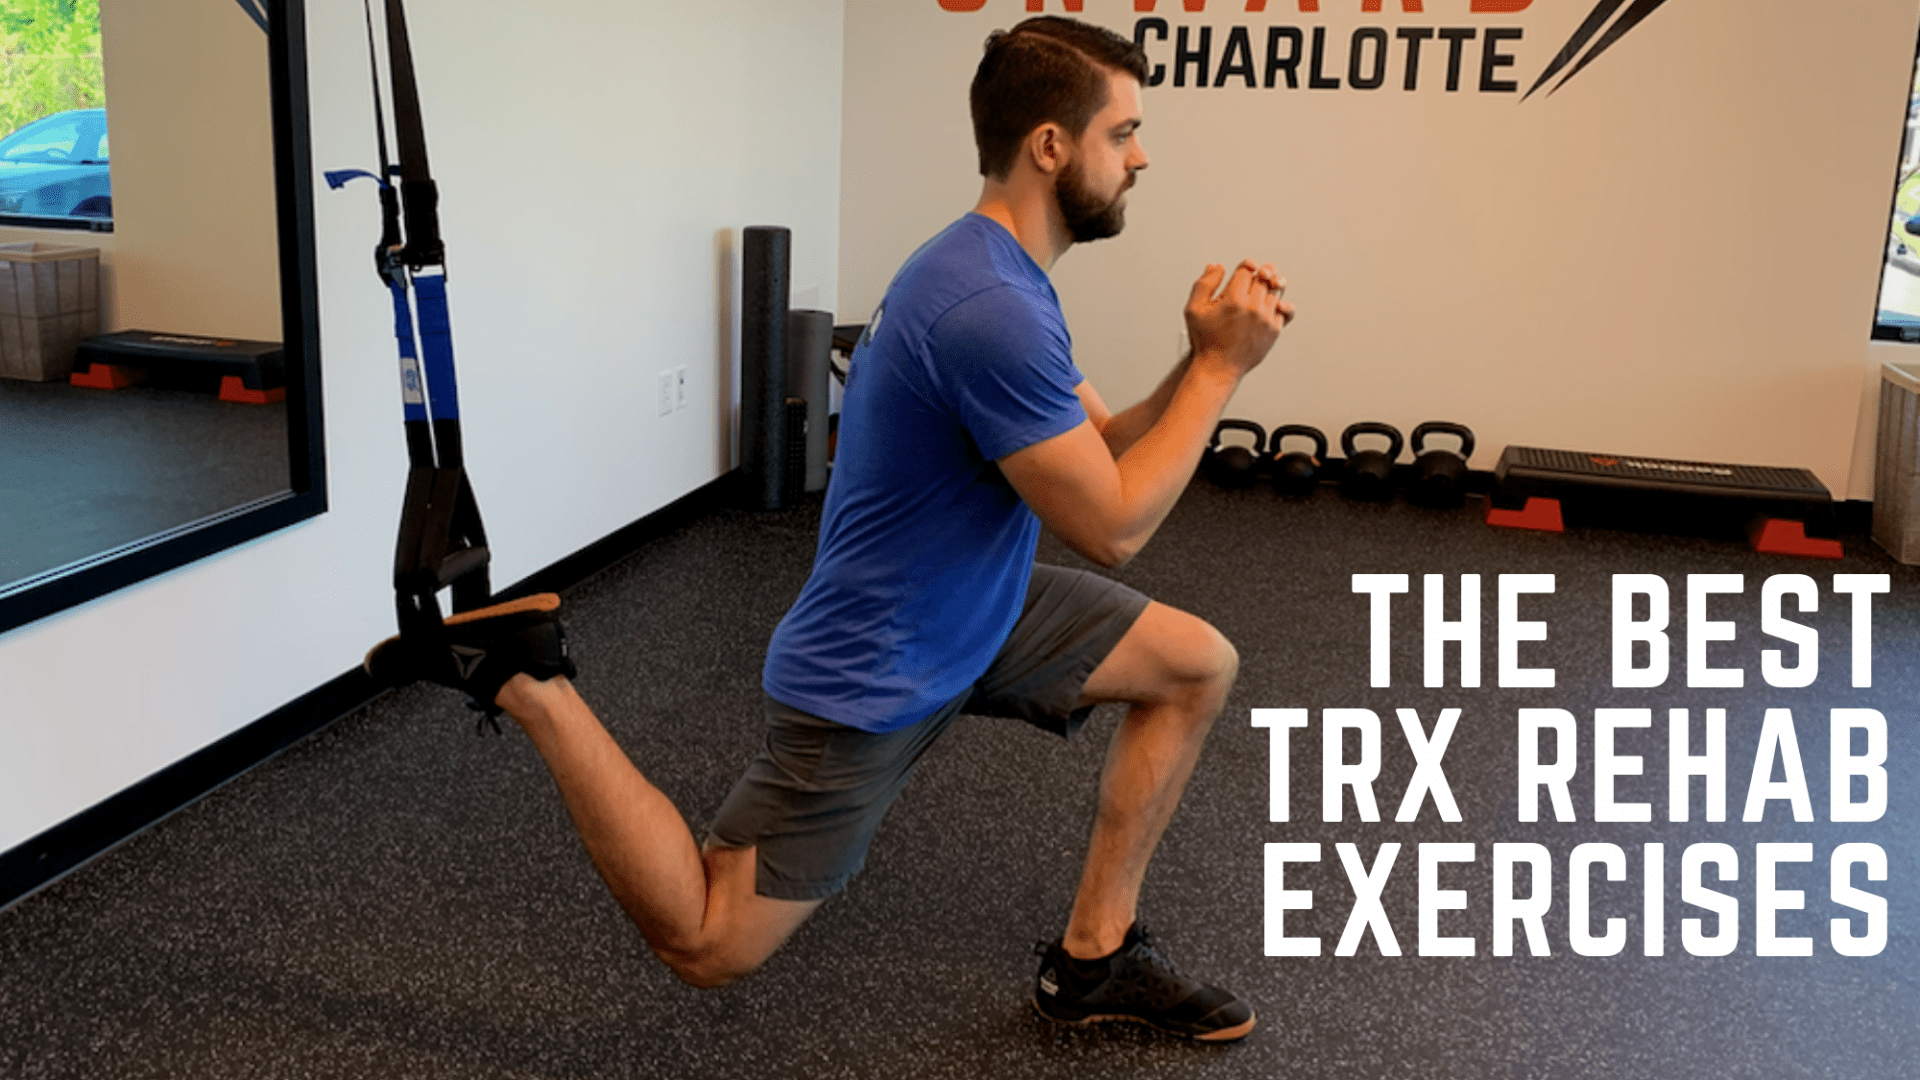 TRX rehab exercises